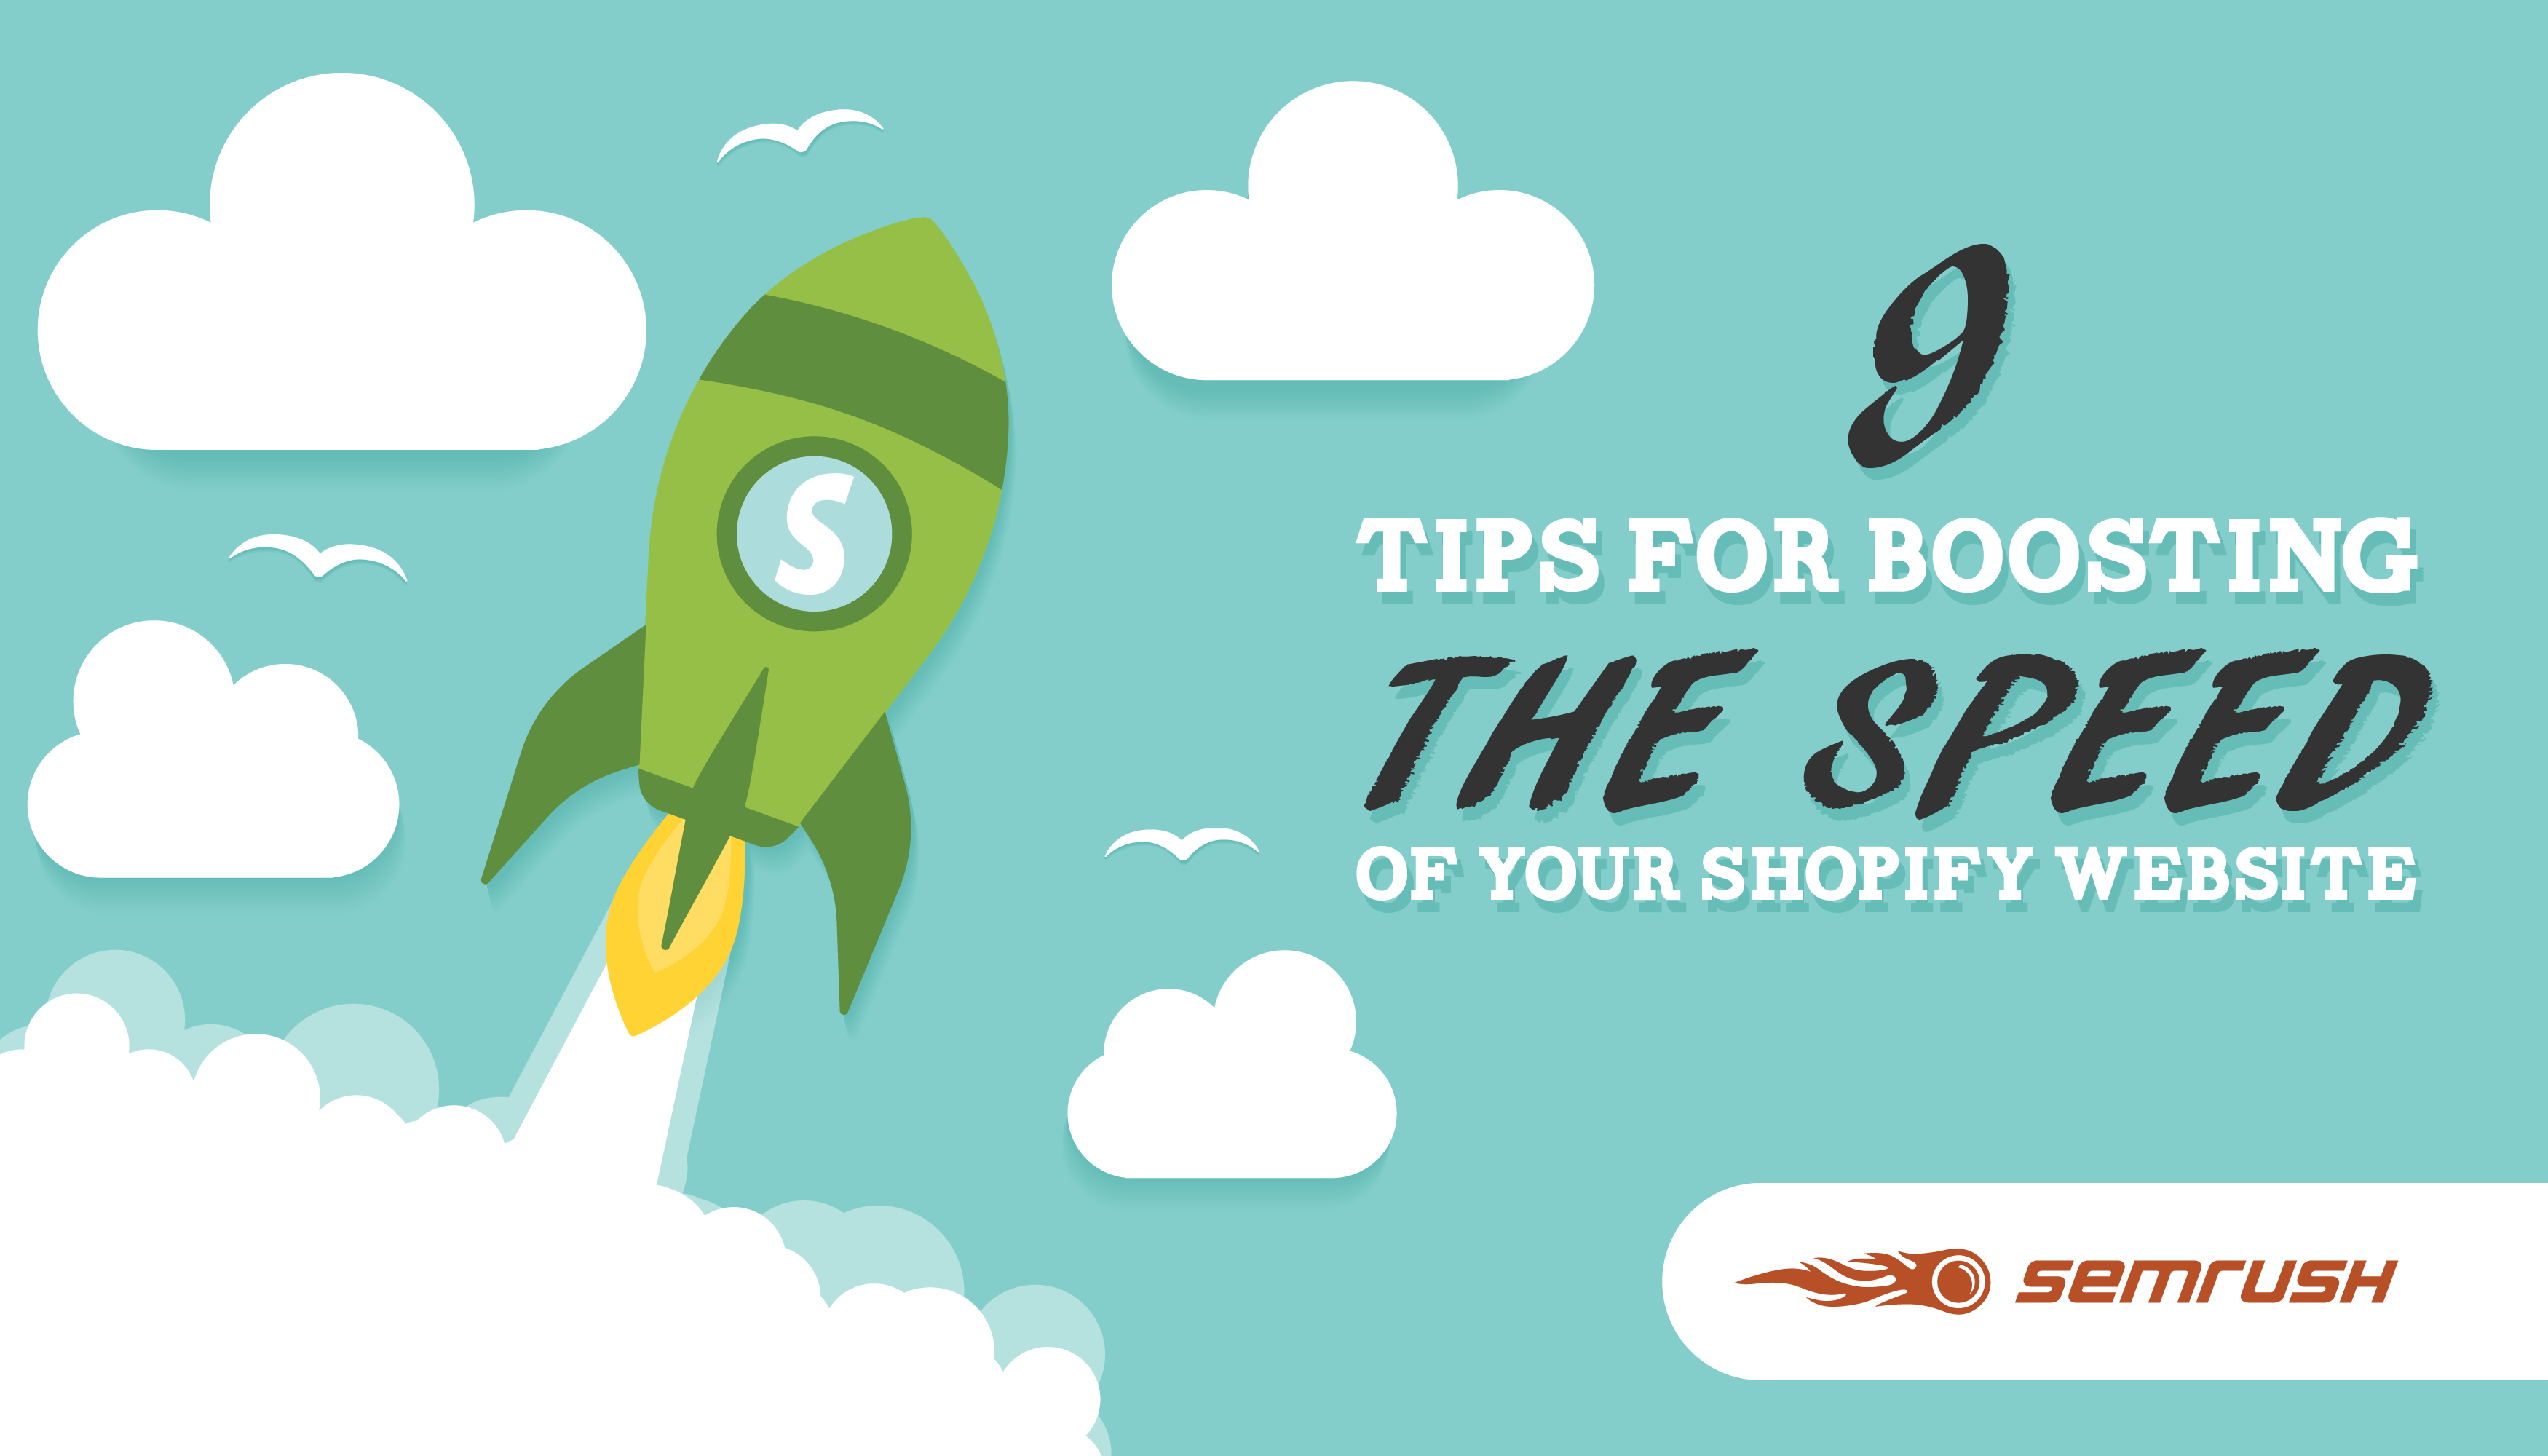 Tips for Boosting the Speed of your Shopify Website